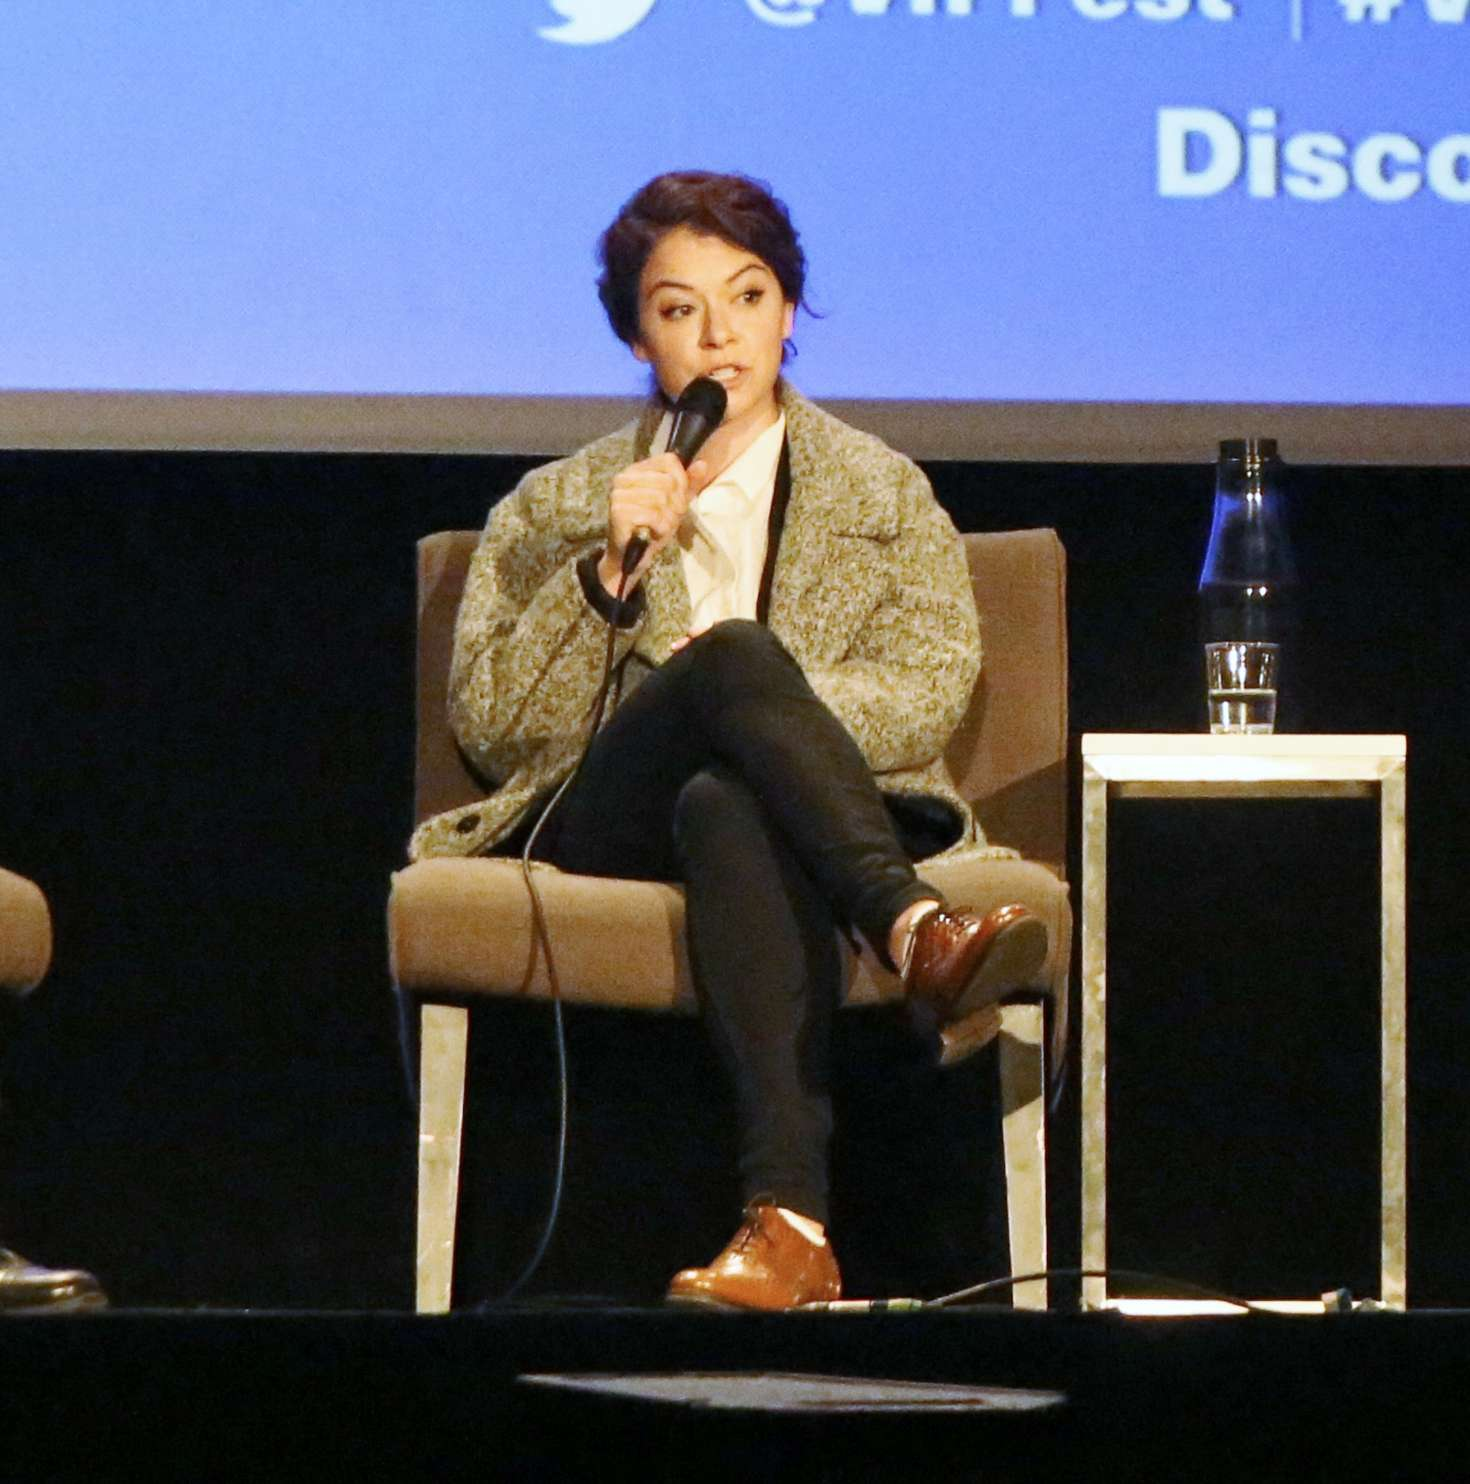 Uncategorized 2016 : Tatiana Maslany: Speaks at the VIFF in Vancouver-36